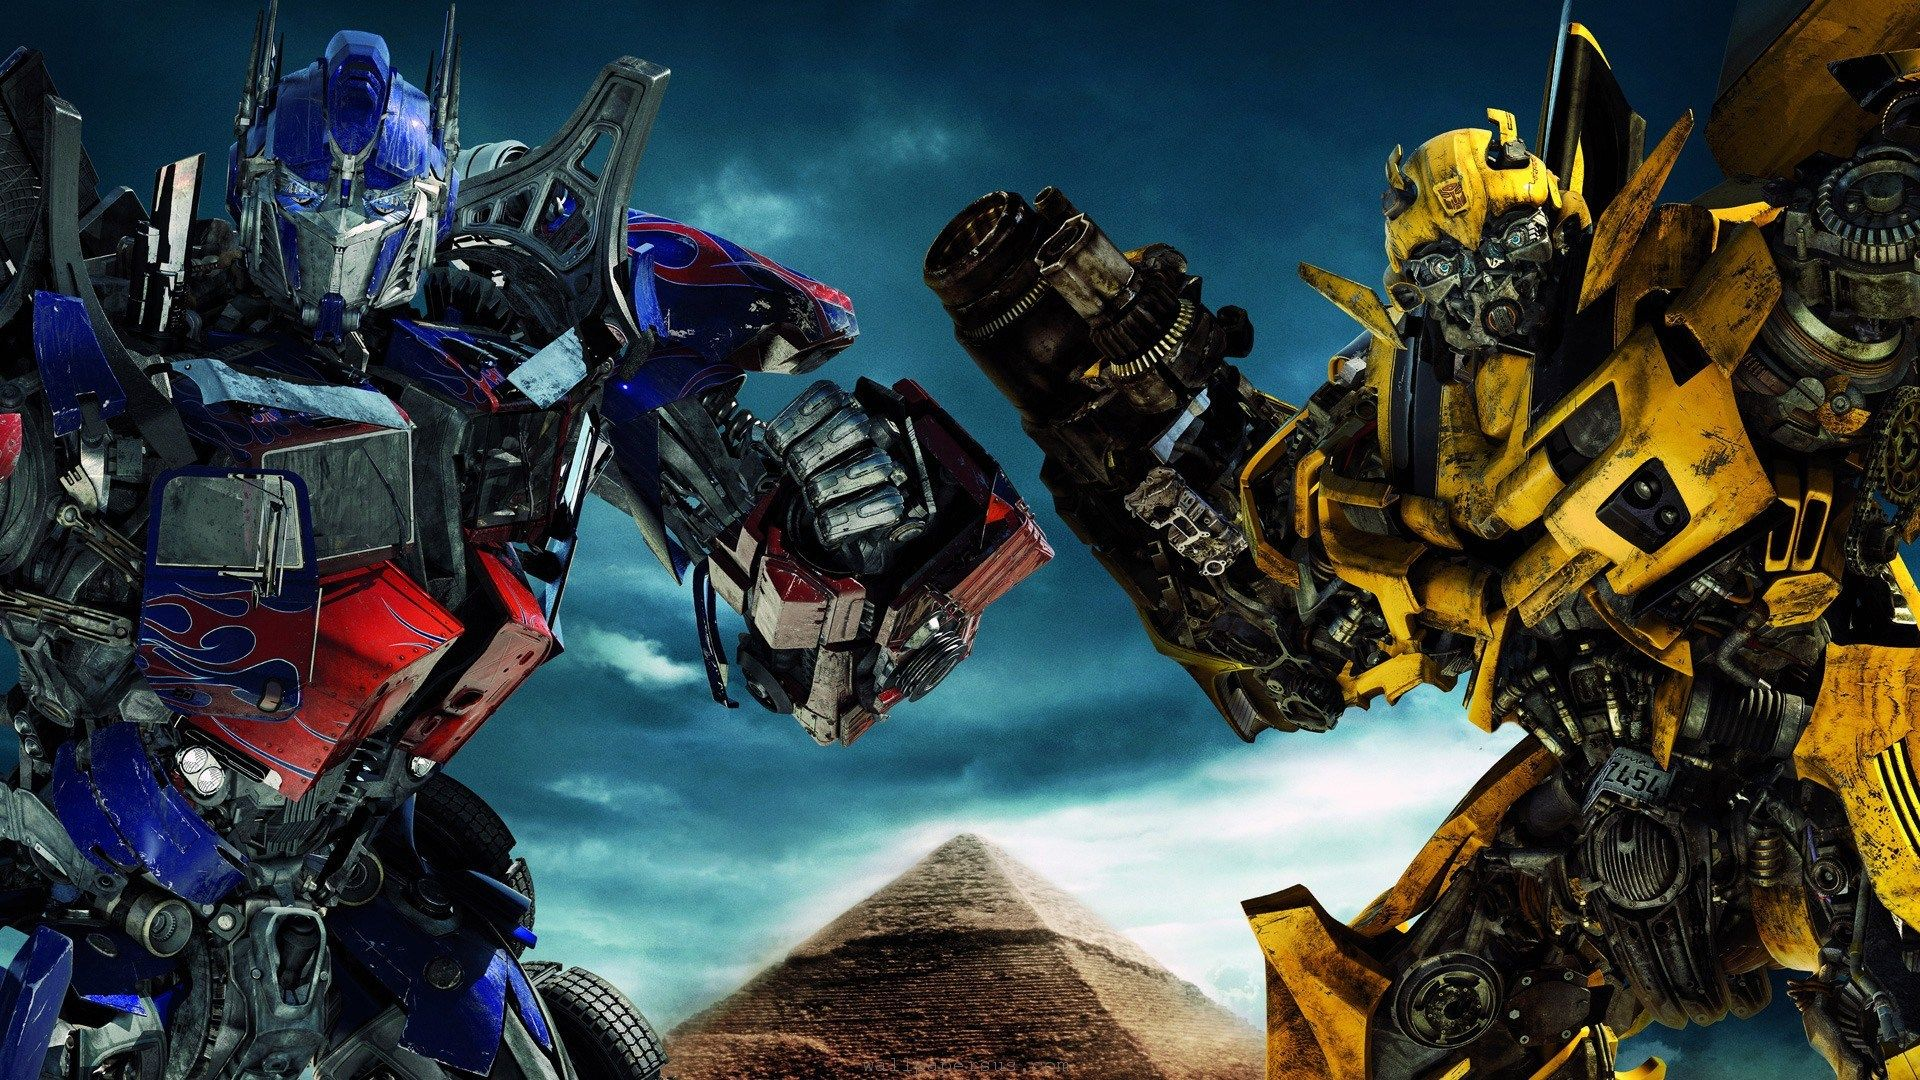 Transformers wallpaper for desktop background movies - Transformers desktop backgrounds ...